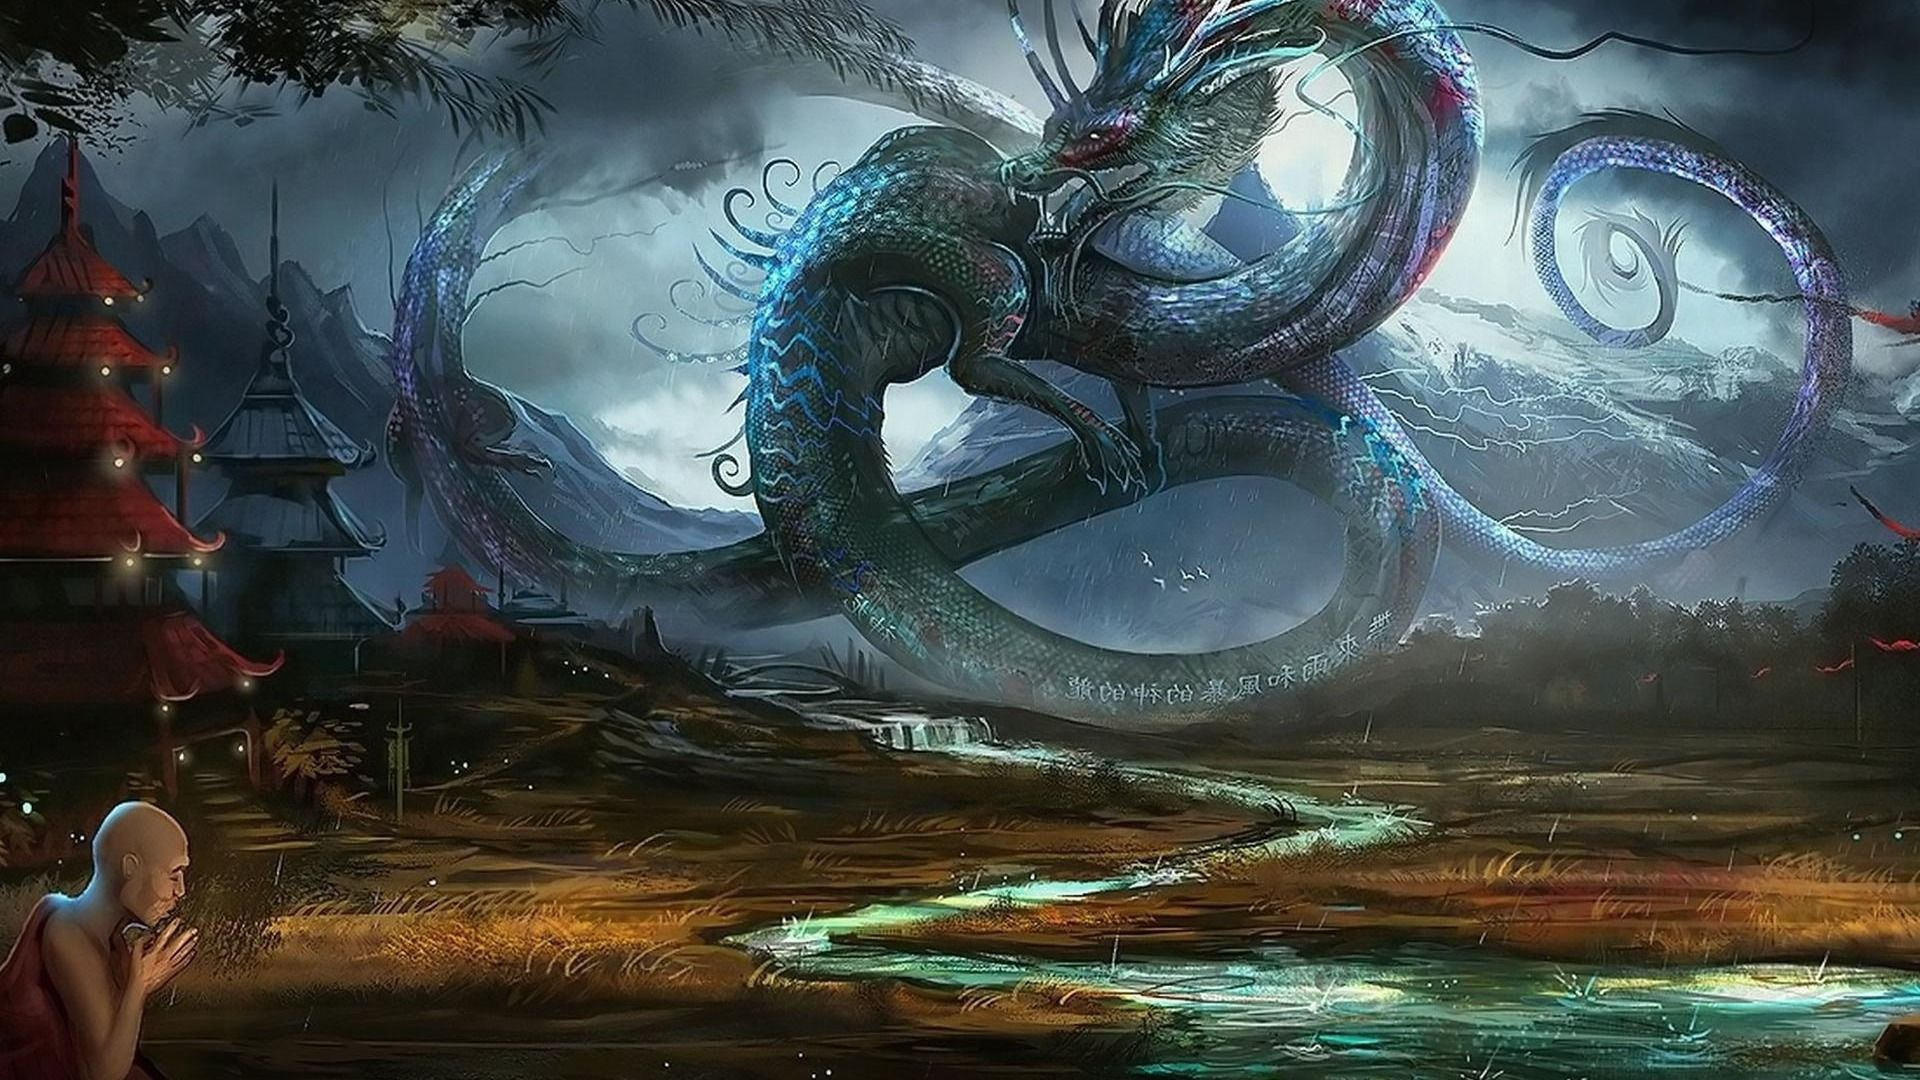 Wallpapers For Chinese Dragon Wallpapers 3d 1920x1080